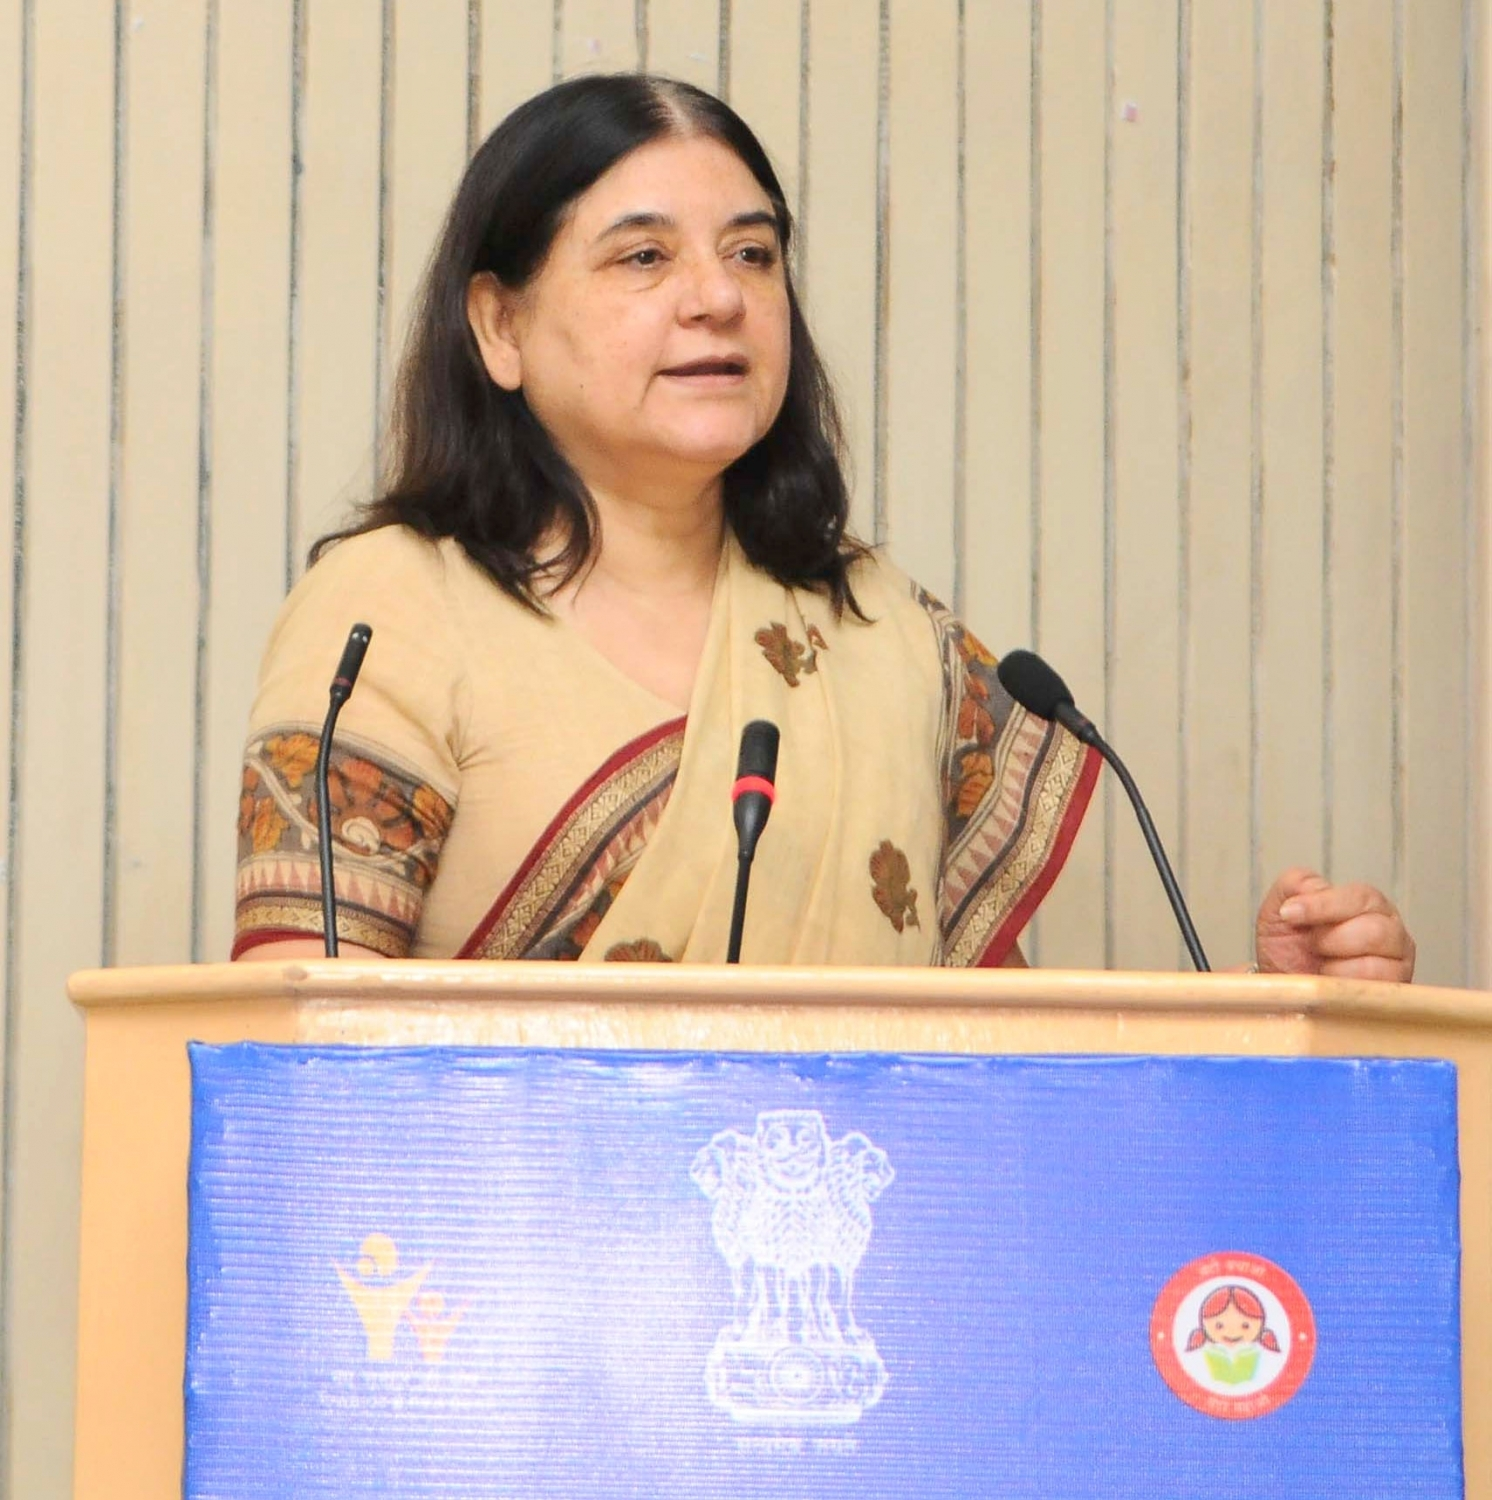 New Delhi: Union Minister for Women and Child Development Maneka Gandhi addresses at the inauguration of the All India Women Journalists' workshop, jointly organised by the Ministry of Women and Child Development and Press Information Bureau, in New Delhi on June 7, 2016. (Photo: IANS/PIB)